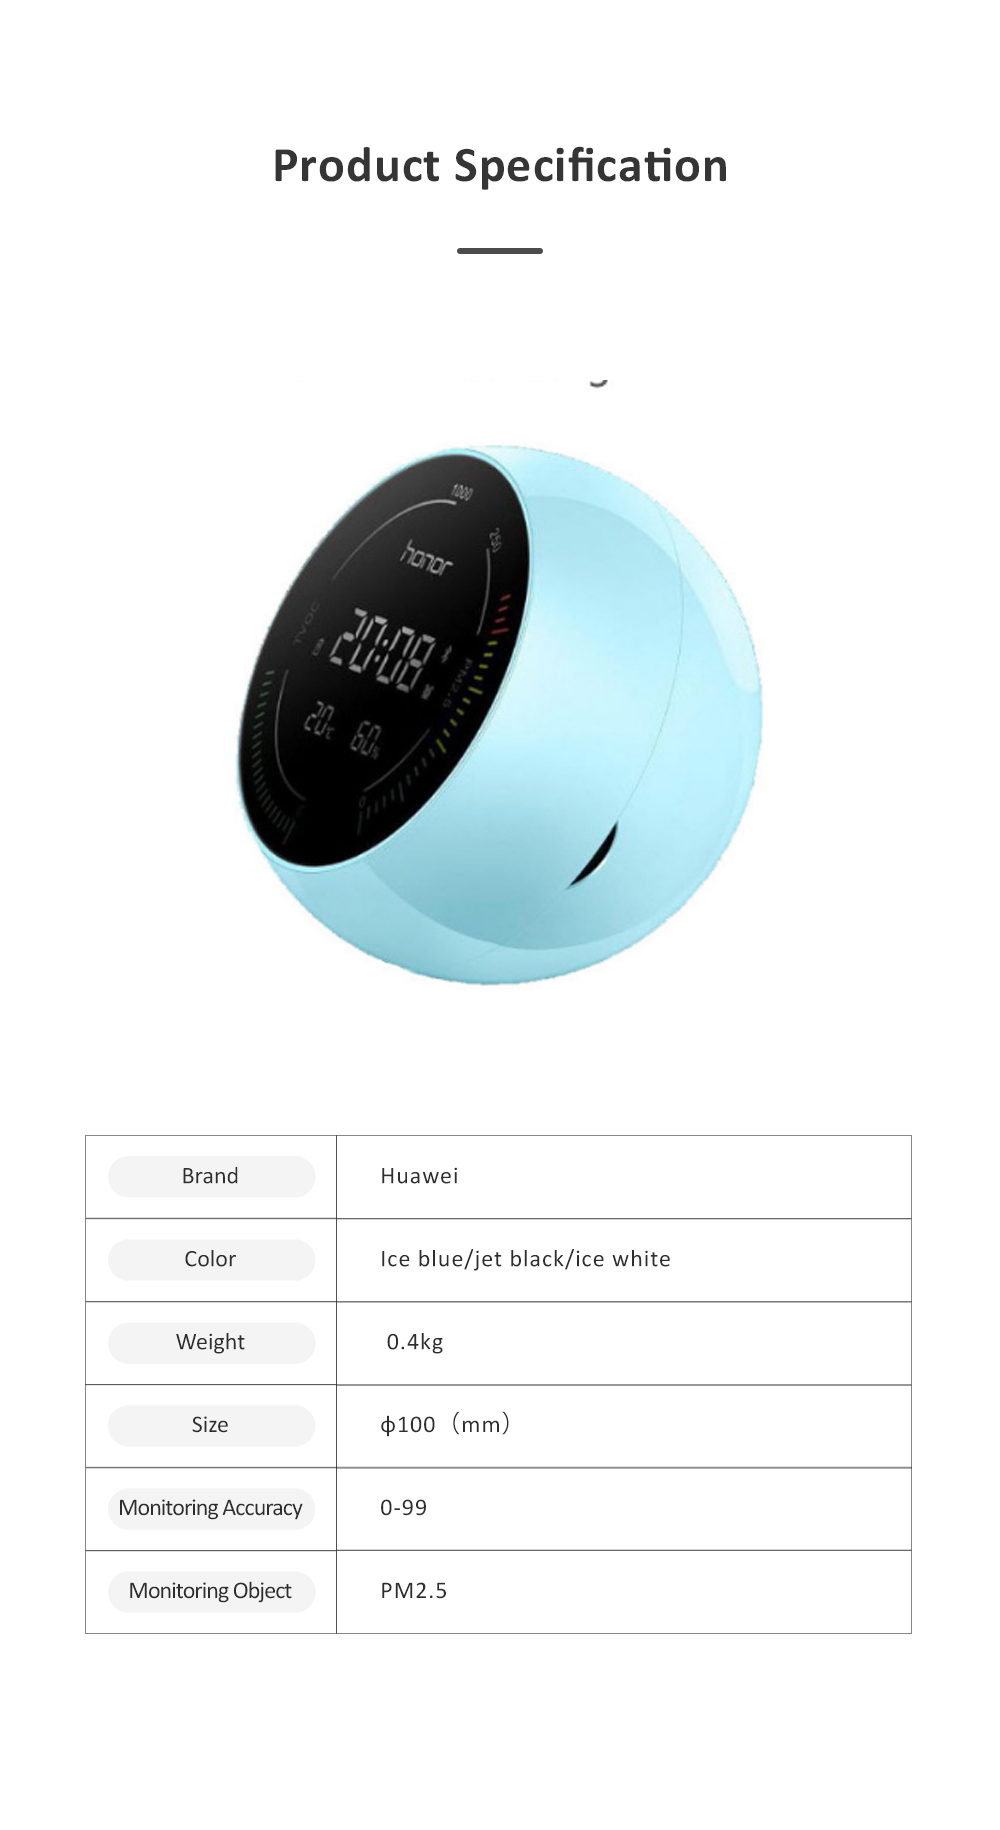 Huawei HONOR TVOC Air Quality Monitor Temperature Humidity PM2.5 Detector for Indoor Real Time Air Pollution Detection 8